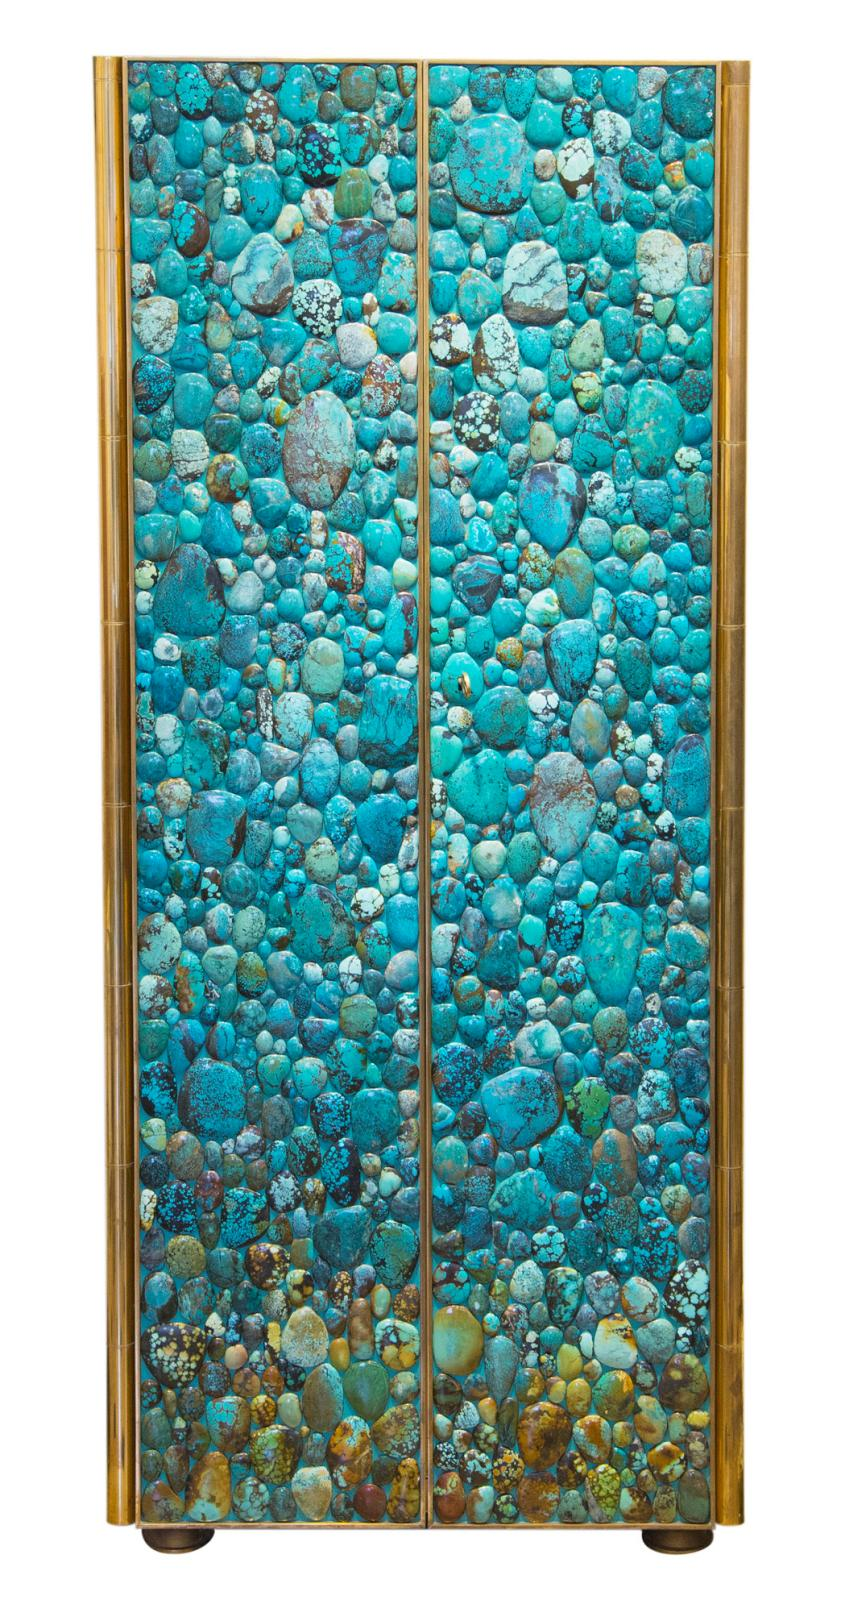 Kam Tin, France, 2014, turquoise cabinet, wooden structure covered with turquoise cabochons, brass feet and finishes, 161 x 67 x 50 cm. Maison Rapin.